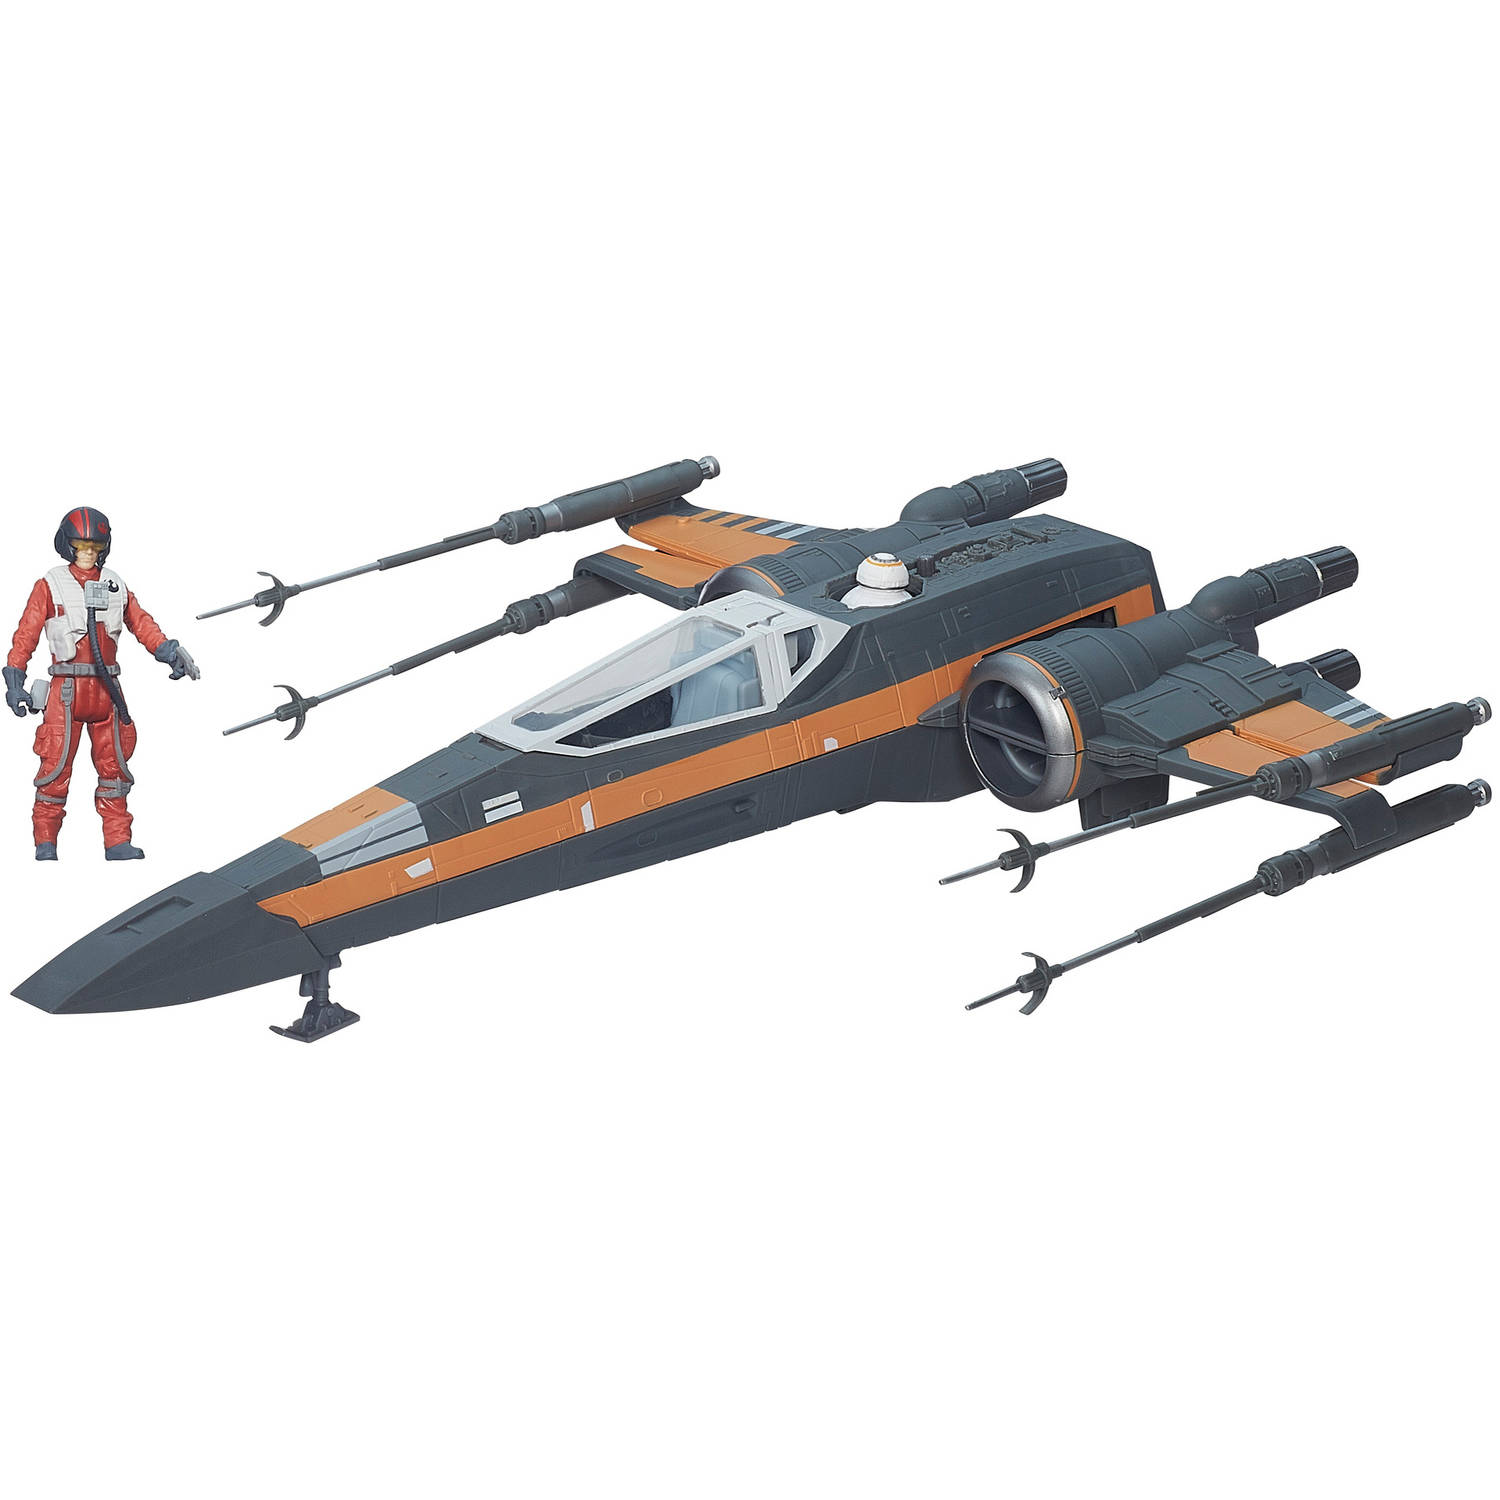 "Star Wars The Force Awakens 3.75"" Vehicle Poe Dameron's X-Wing ..."